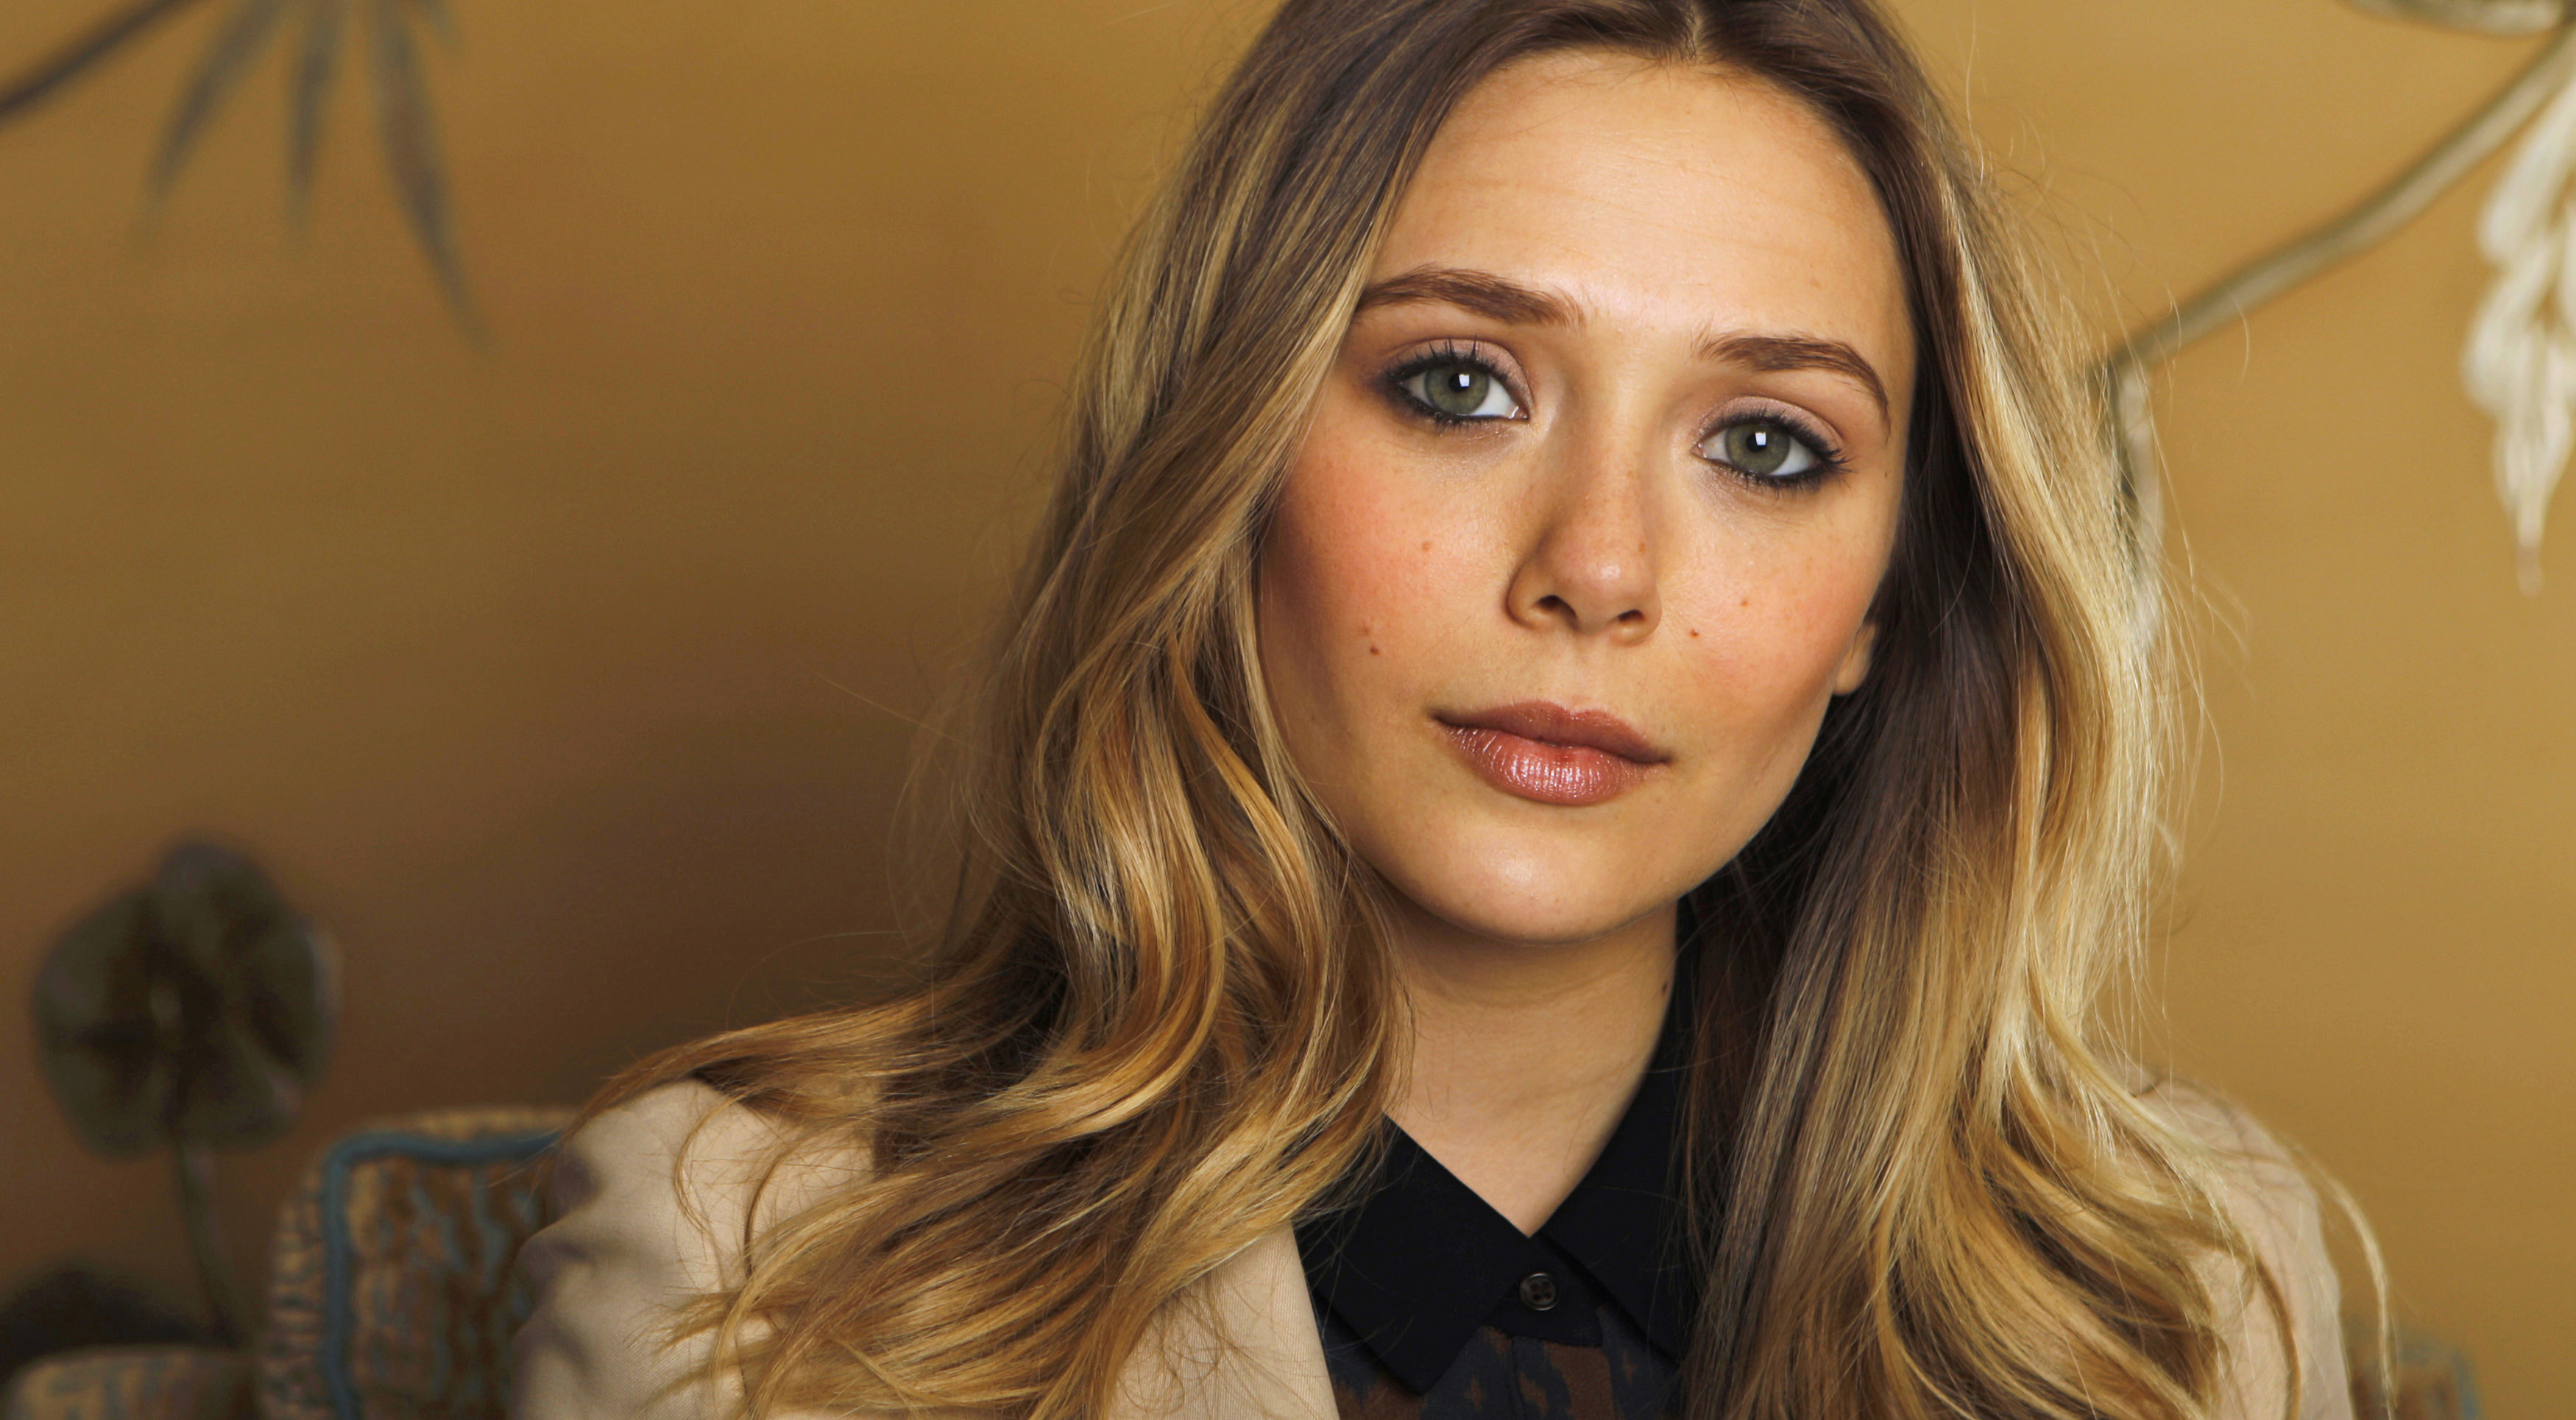 Scarlet Witch Avengers 2 Casting: Elizabeth Olson in Discussions for Role  in Avengers: Age of Ultron : Entertainment : Latin Post